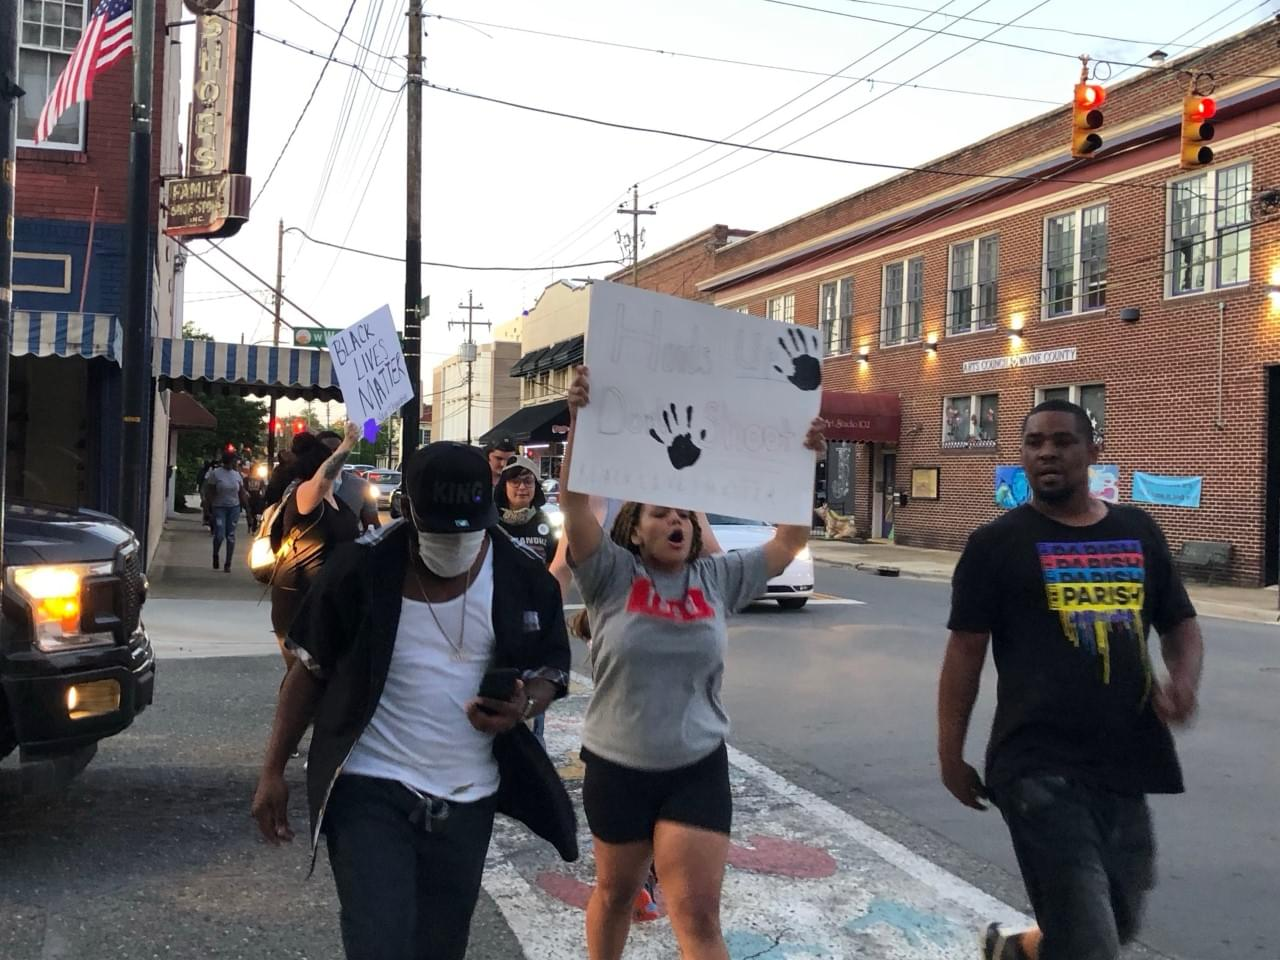 Demonstrations Come To Downtown Goldsboro